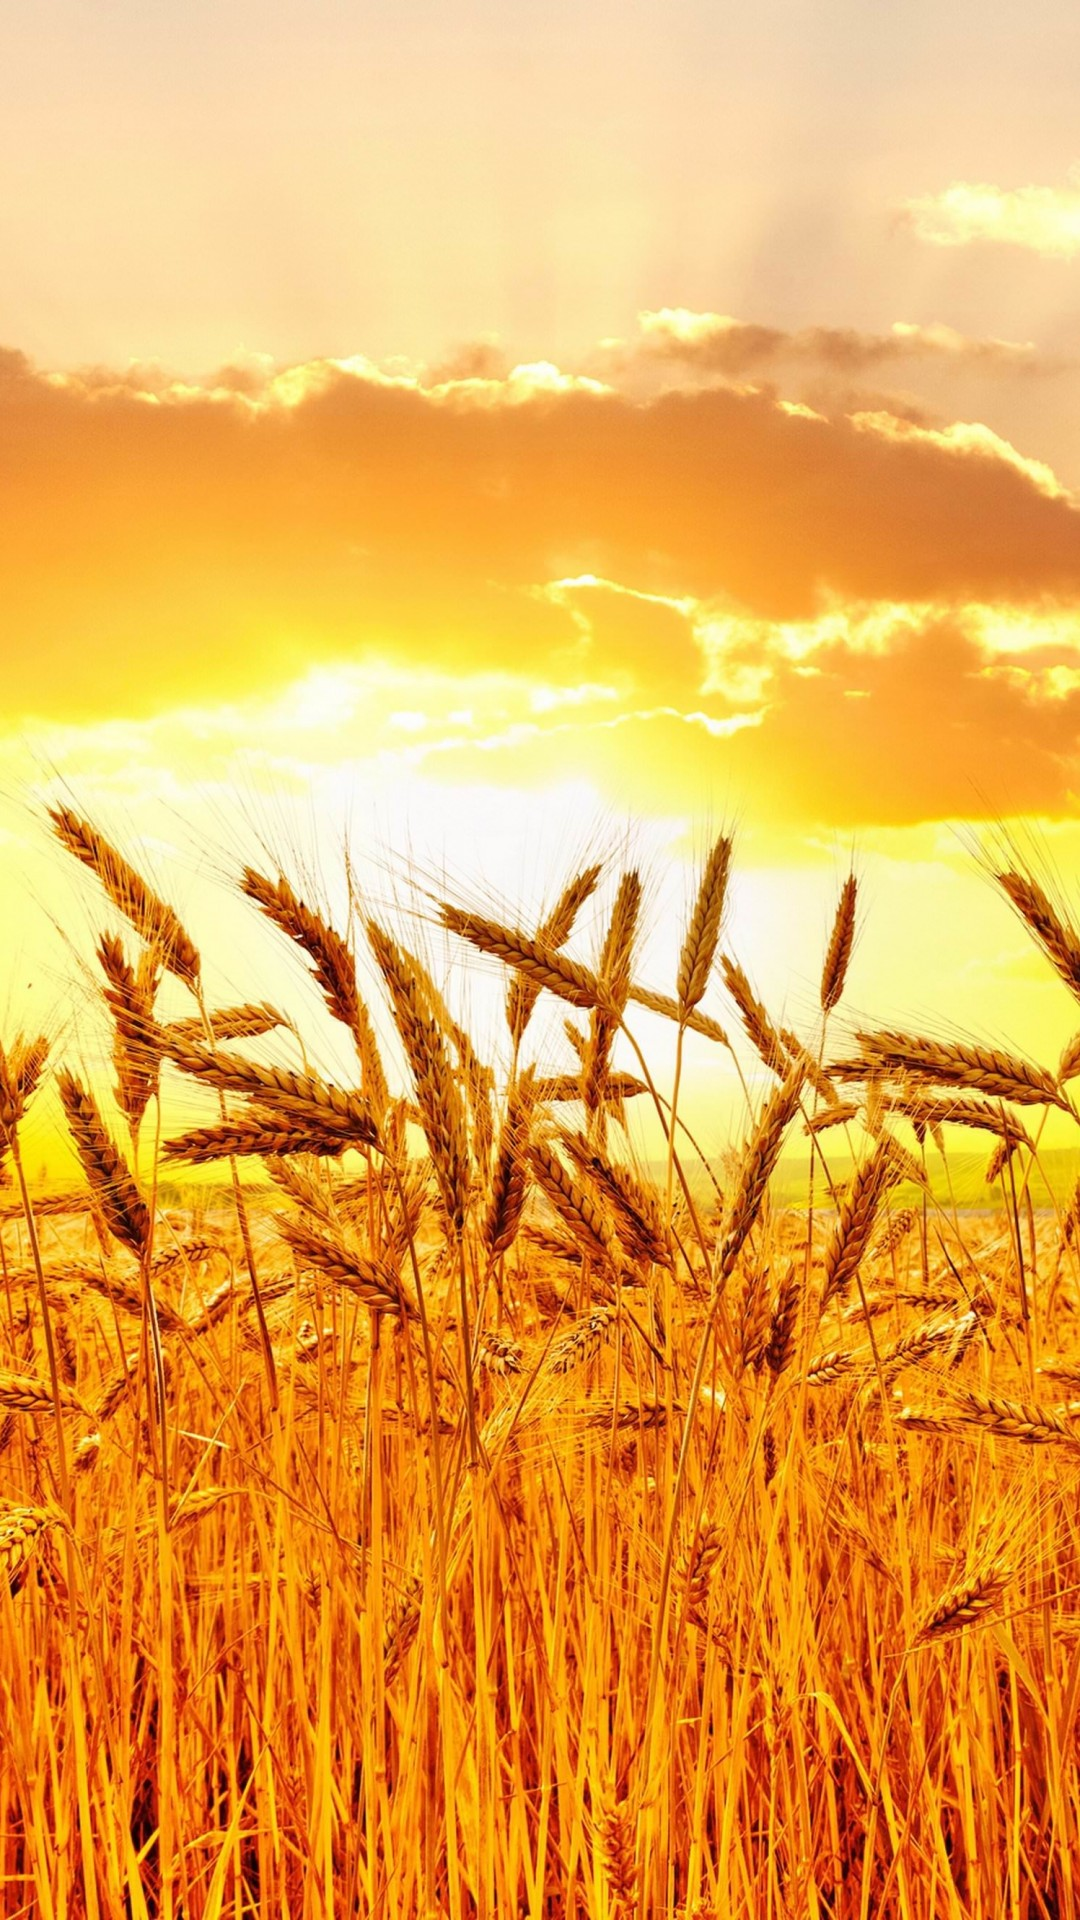 Golden Wheat Field At Sunset Wallpaper for Motorola Moto X